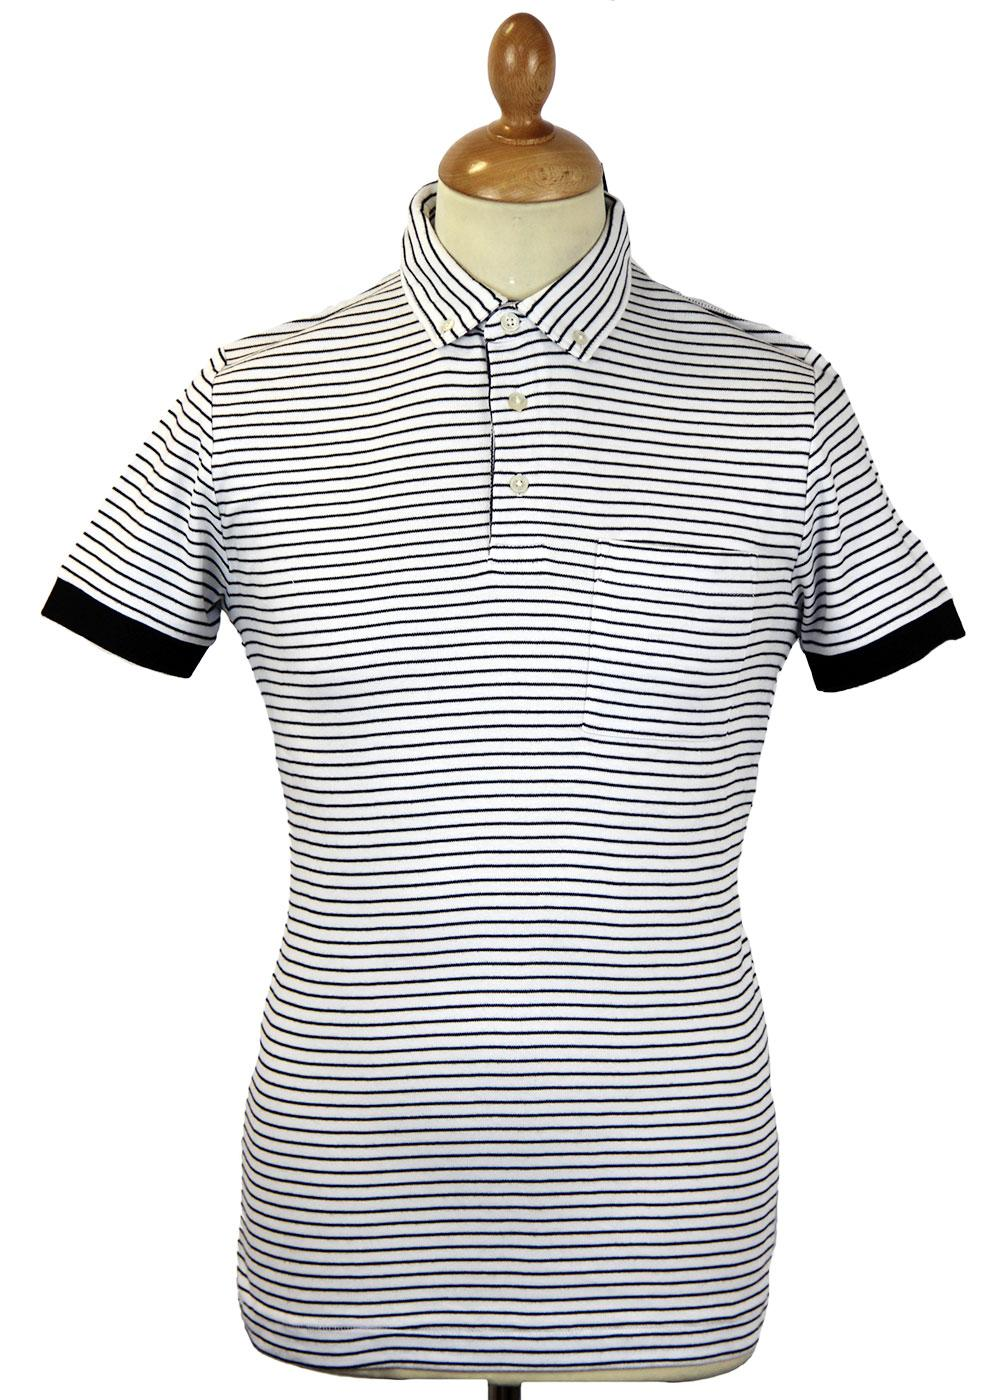 FRENCH CONNECTION Exhibition Stripe Retro Mod Polo